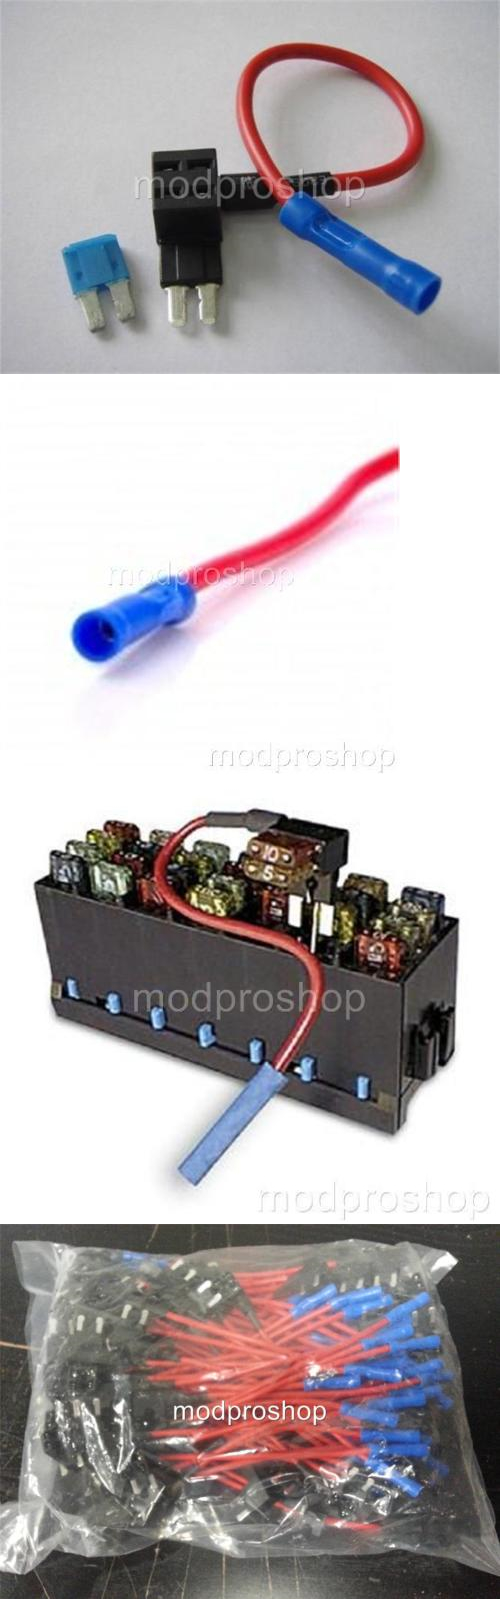 Fuses And Fuse Holders Micro2 Add A Circuit Atr Tap 50 Atm Addafuse Addacircuit 4 For Mini Blade Style Pack